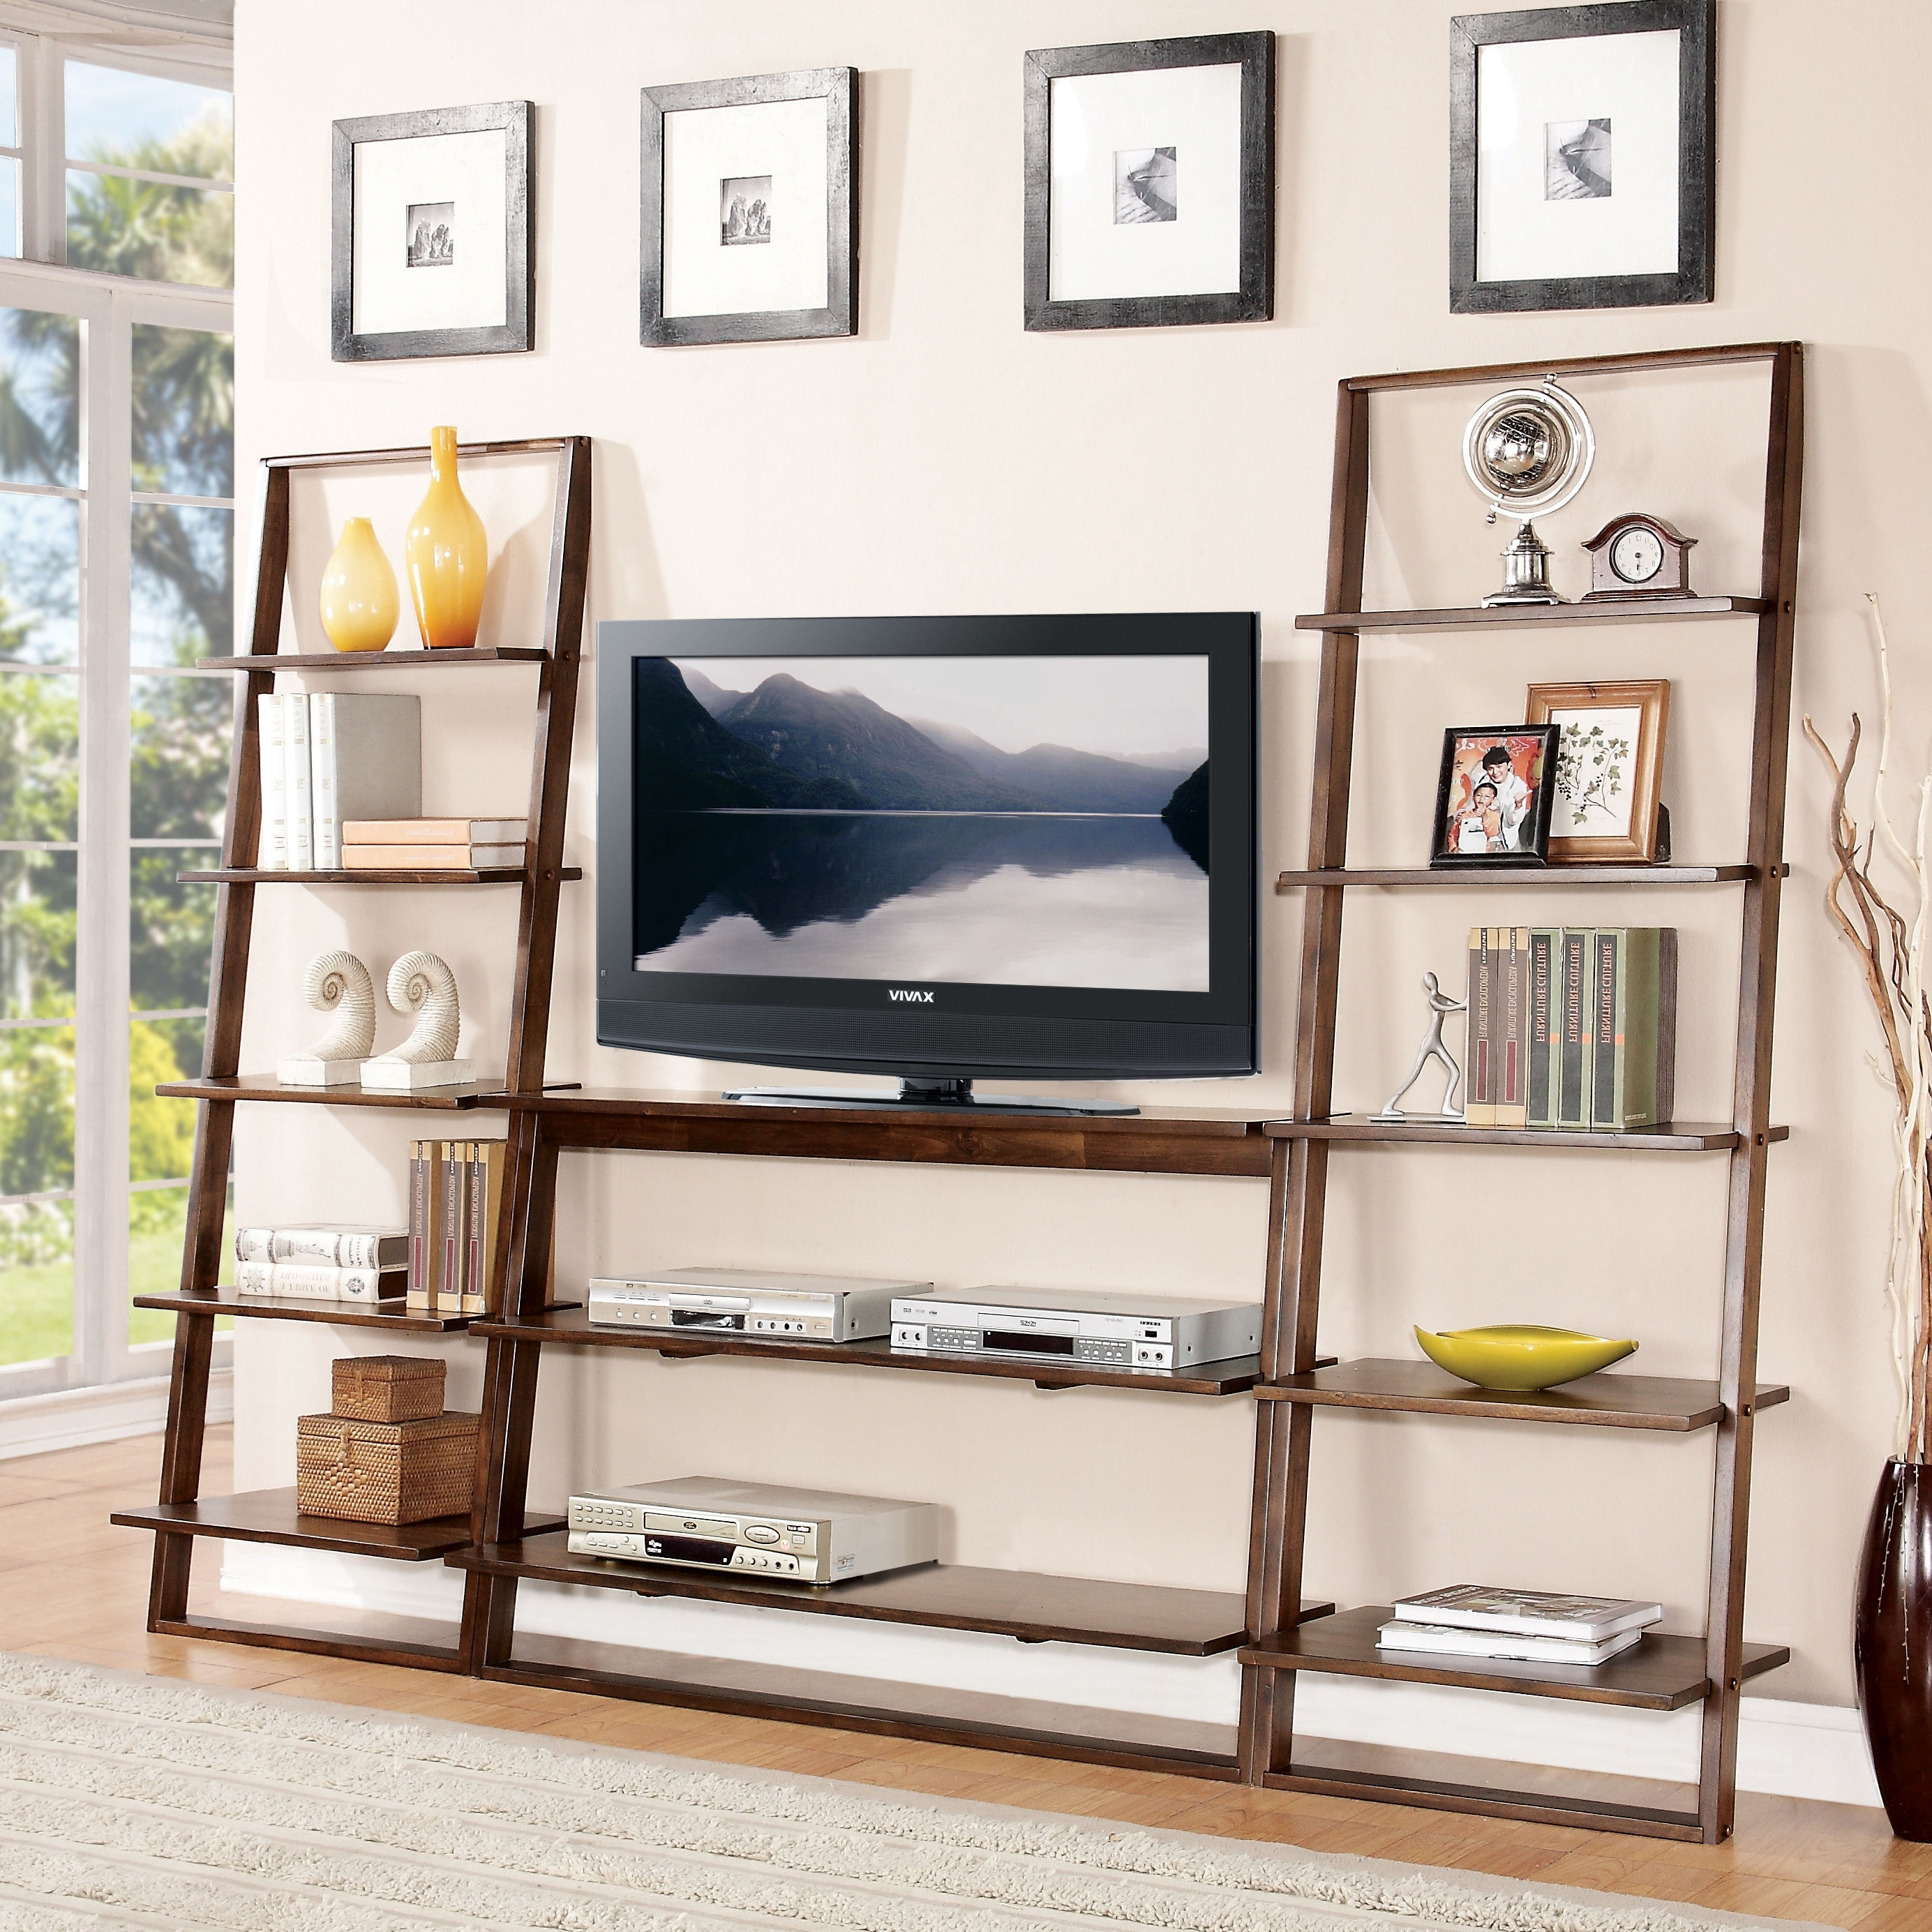 Contemporary Leaning Bookcase Ideas: Minimalist Leaning Bookcase For Current Bookcases Tv Stand (View 4 of 15)